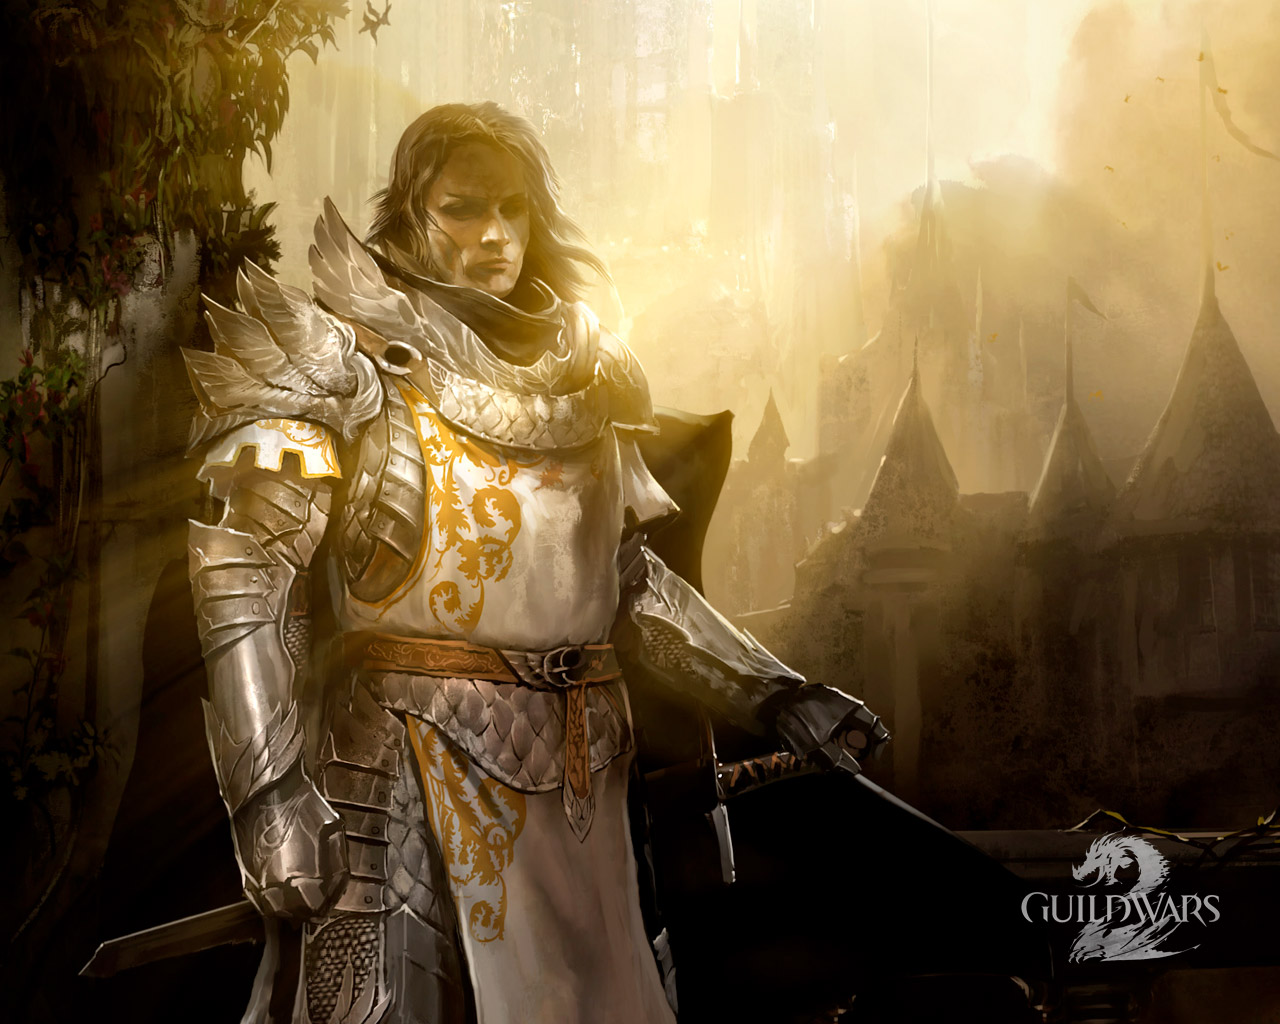 Free Guild Wars 2 Wallpaper in 1280x1024